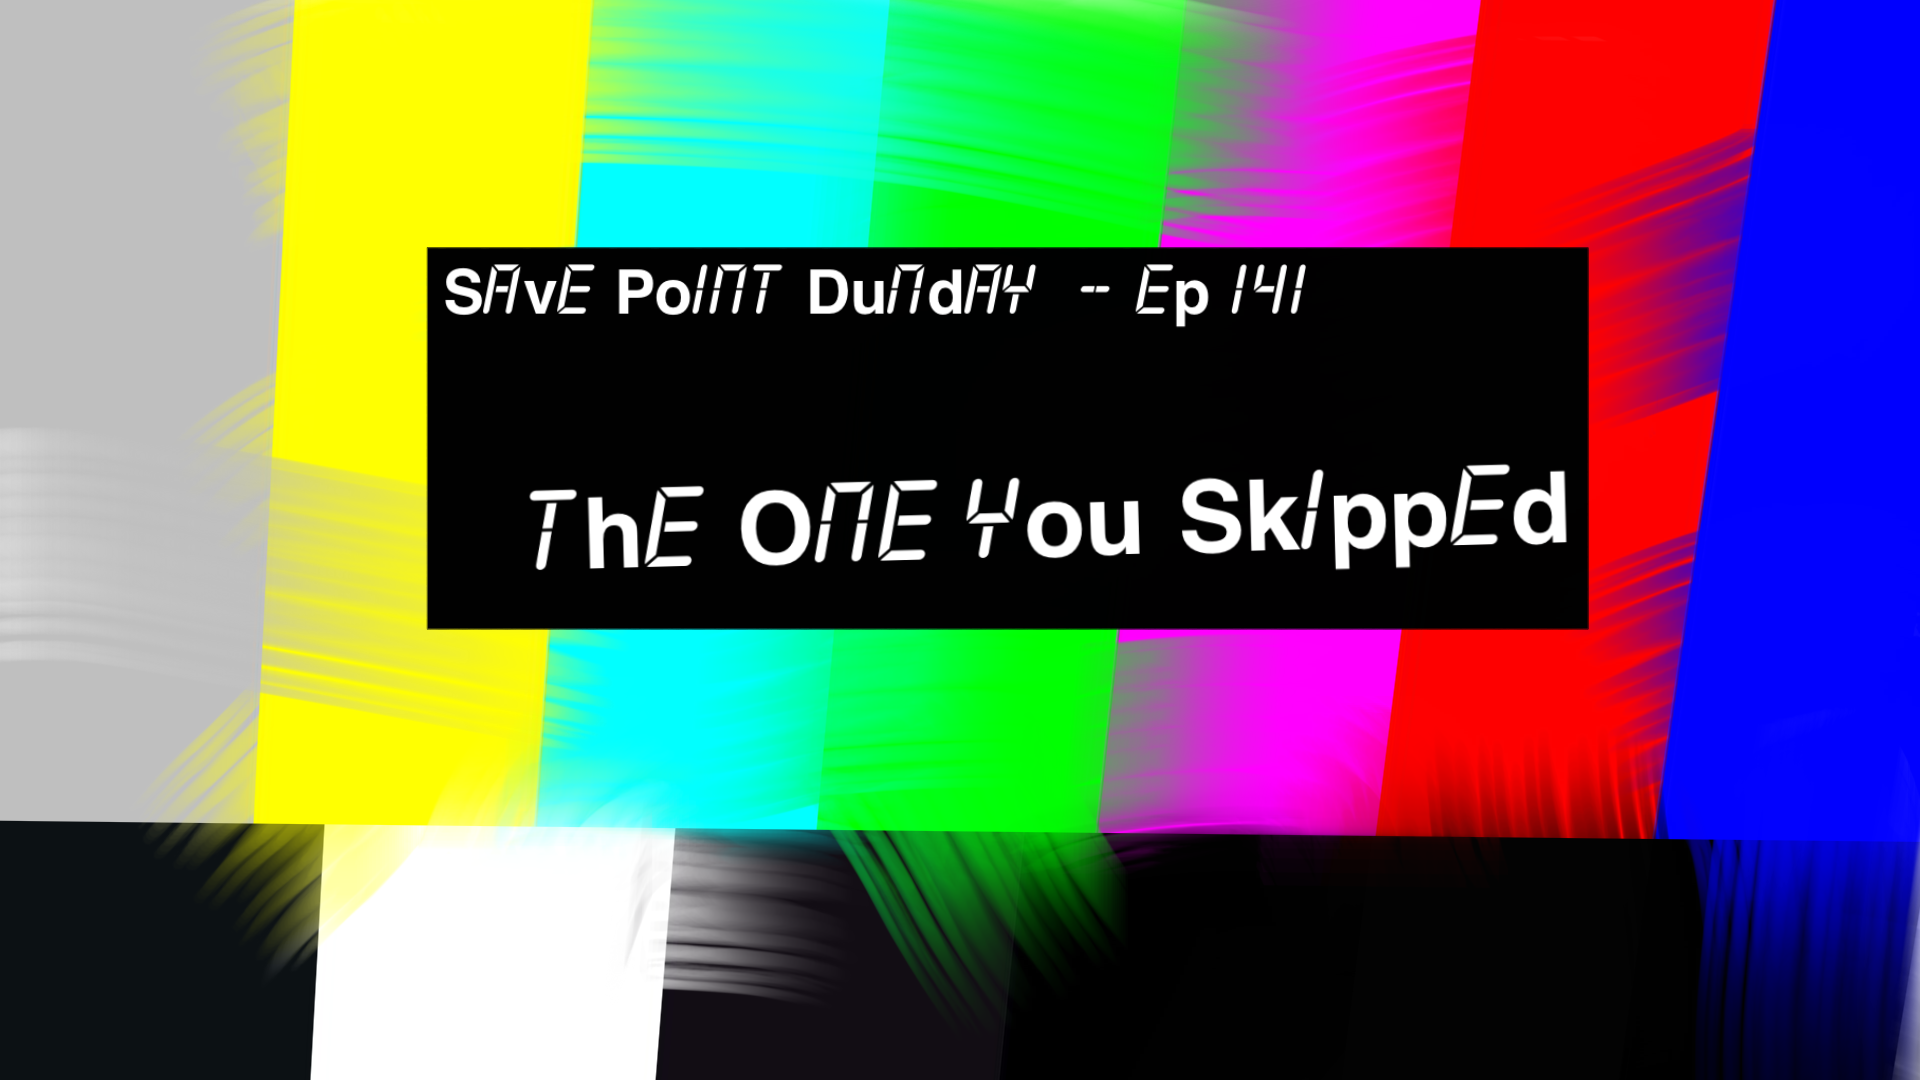 Episode 141: The One You Skipped